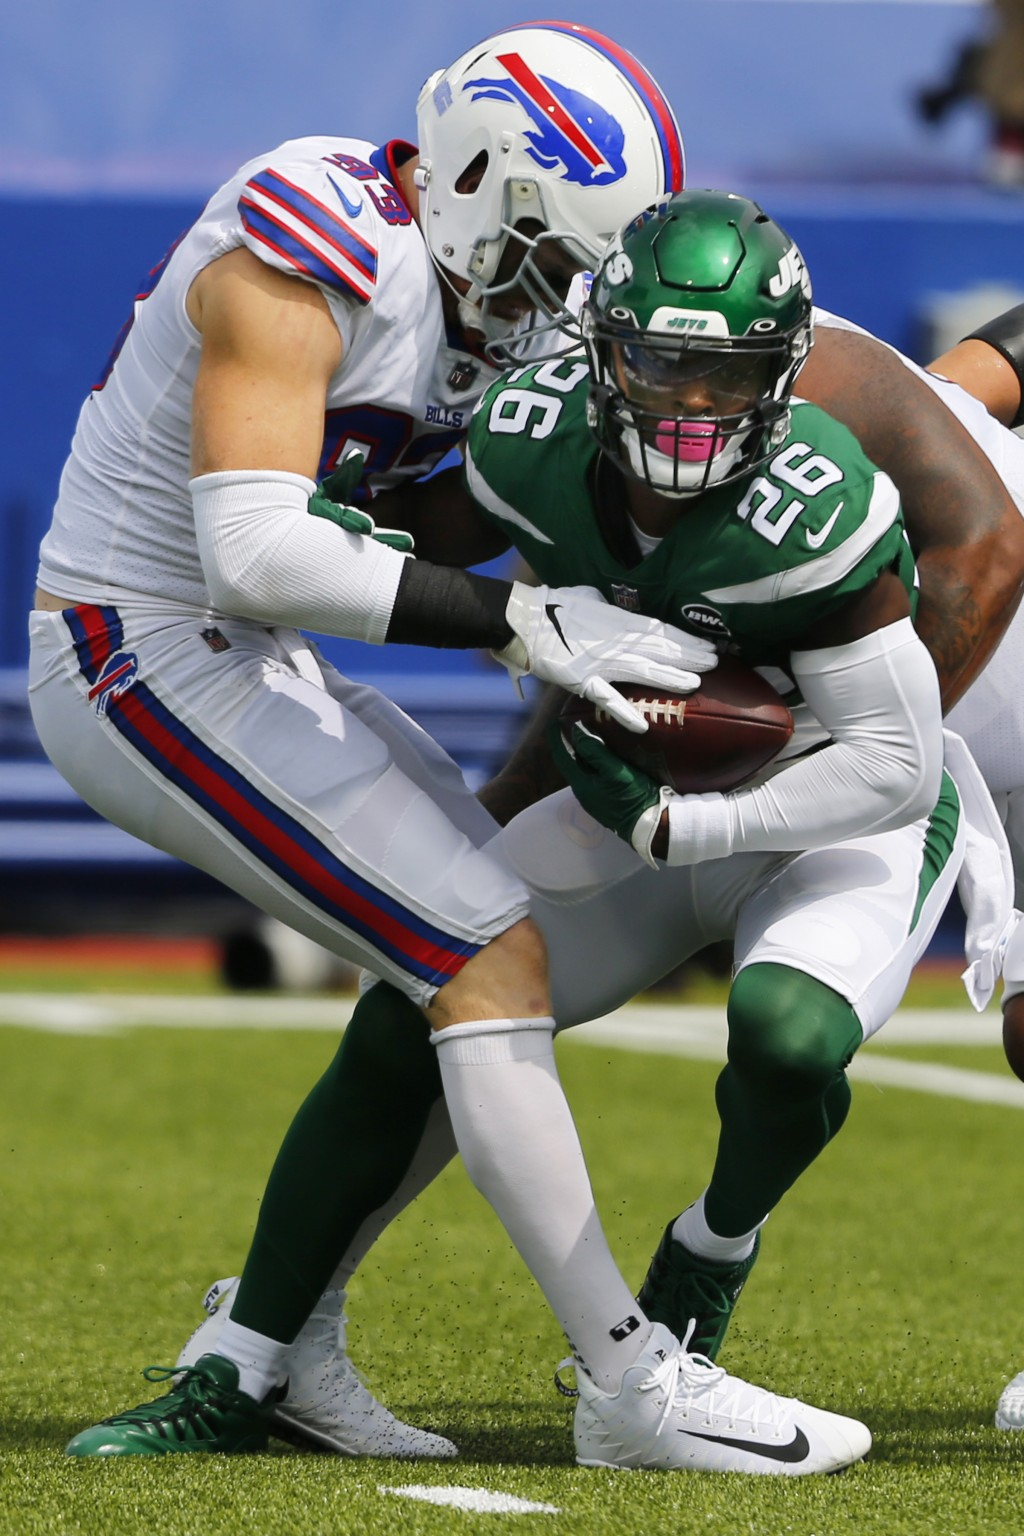 File-This Sept. 13, 2020 file photo shows Buffalo Bills Trent Murphy (93) tackling New York Jets Le'Veon Bell (26) during the first half of an NFL foo...